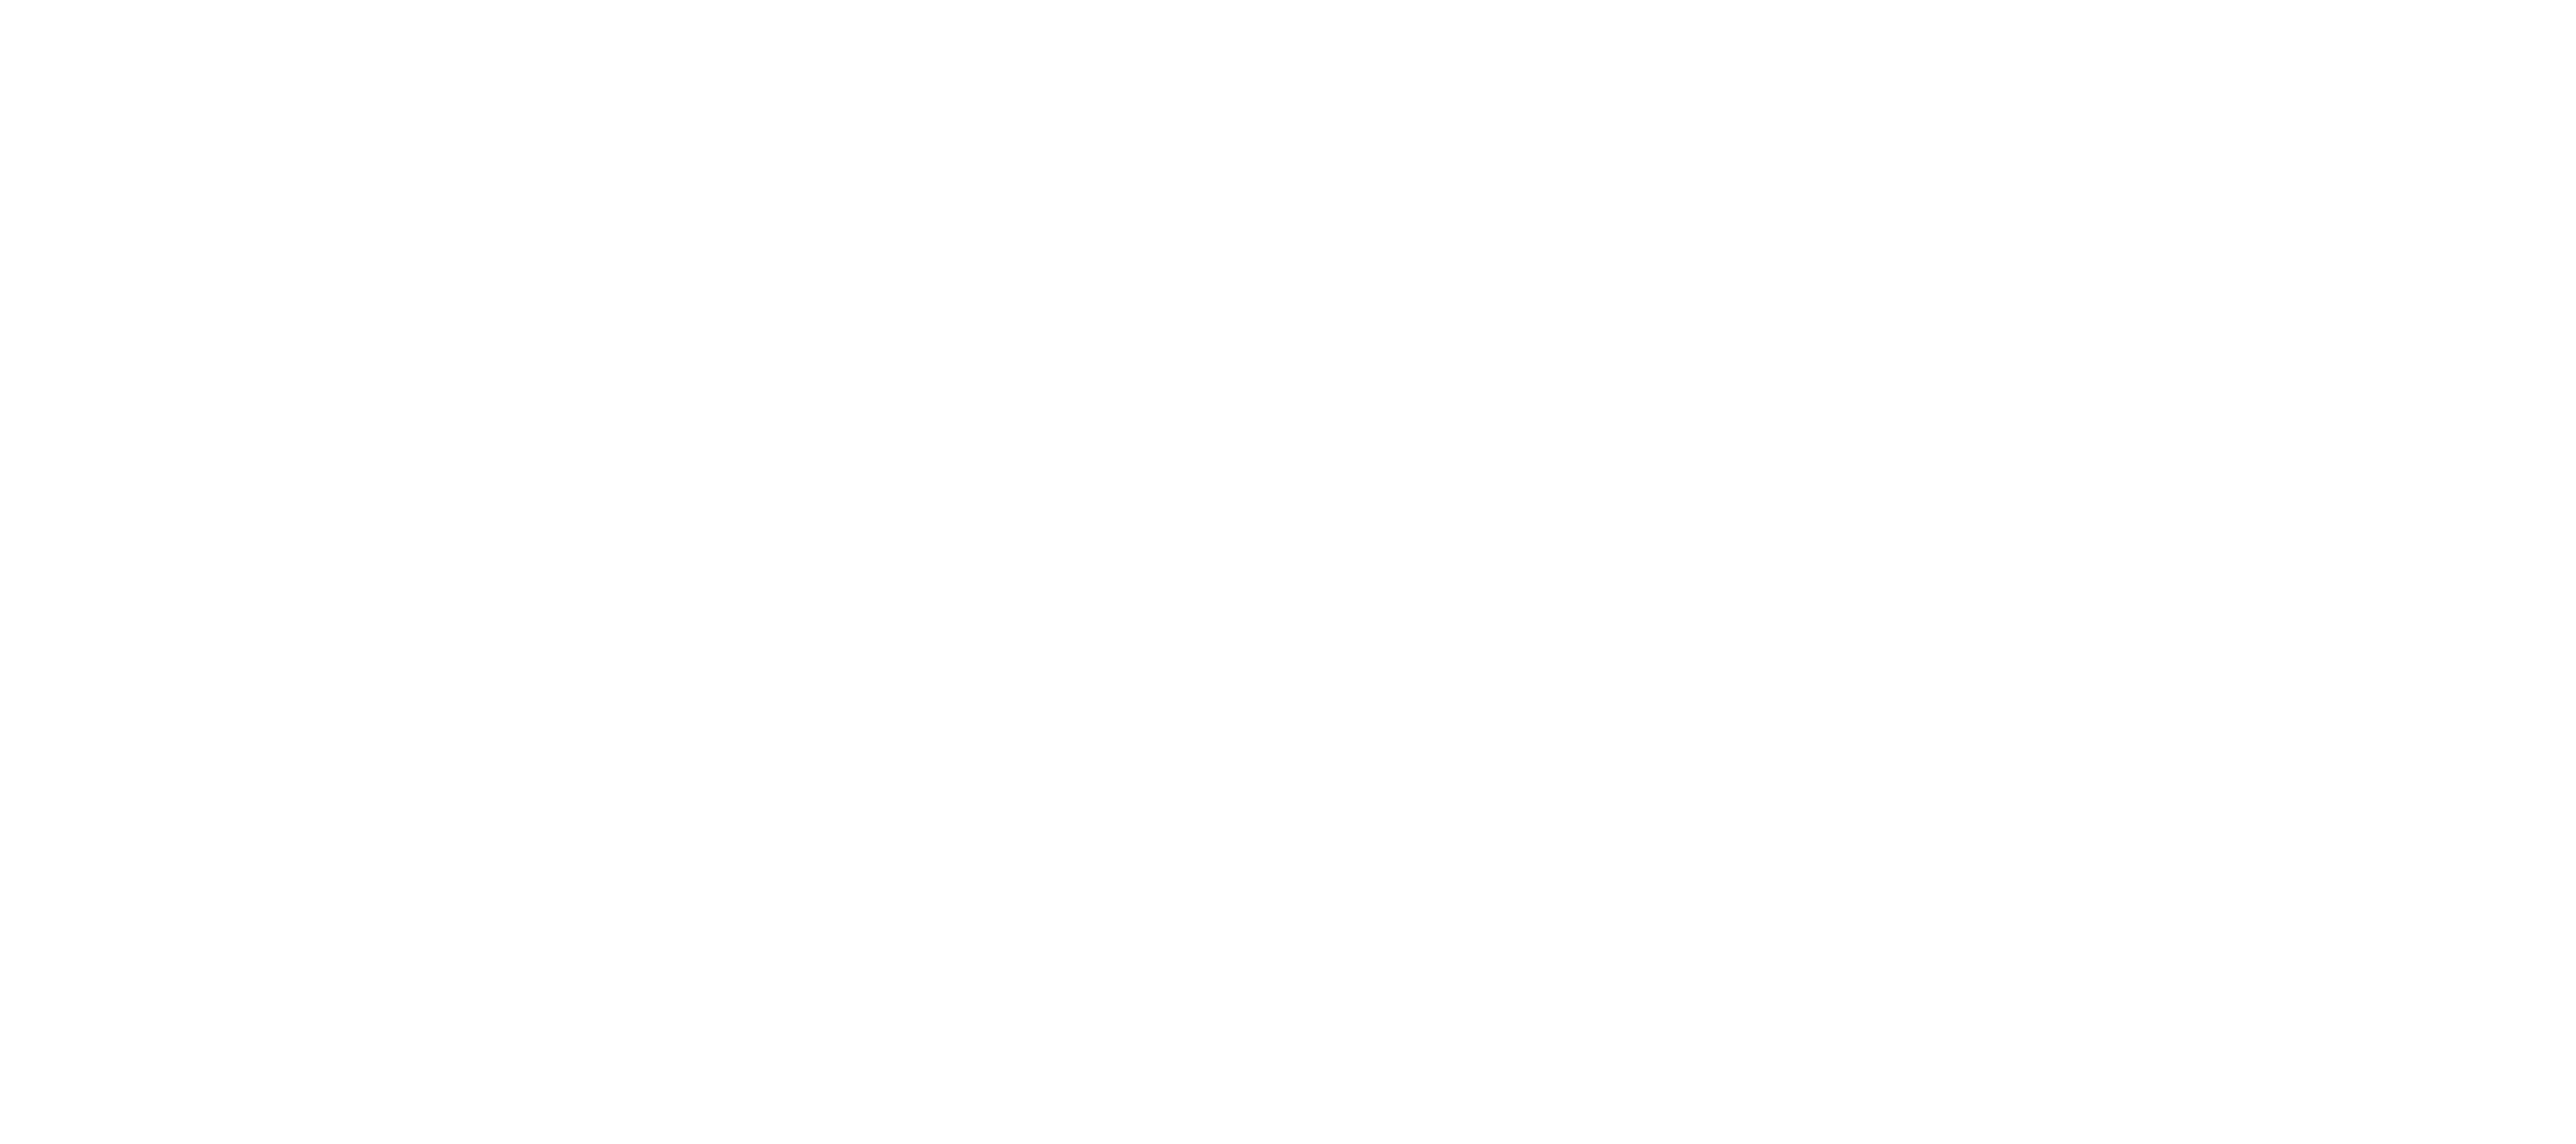 MGN! Mike Gallicchio Now